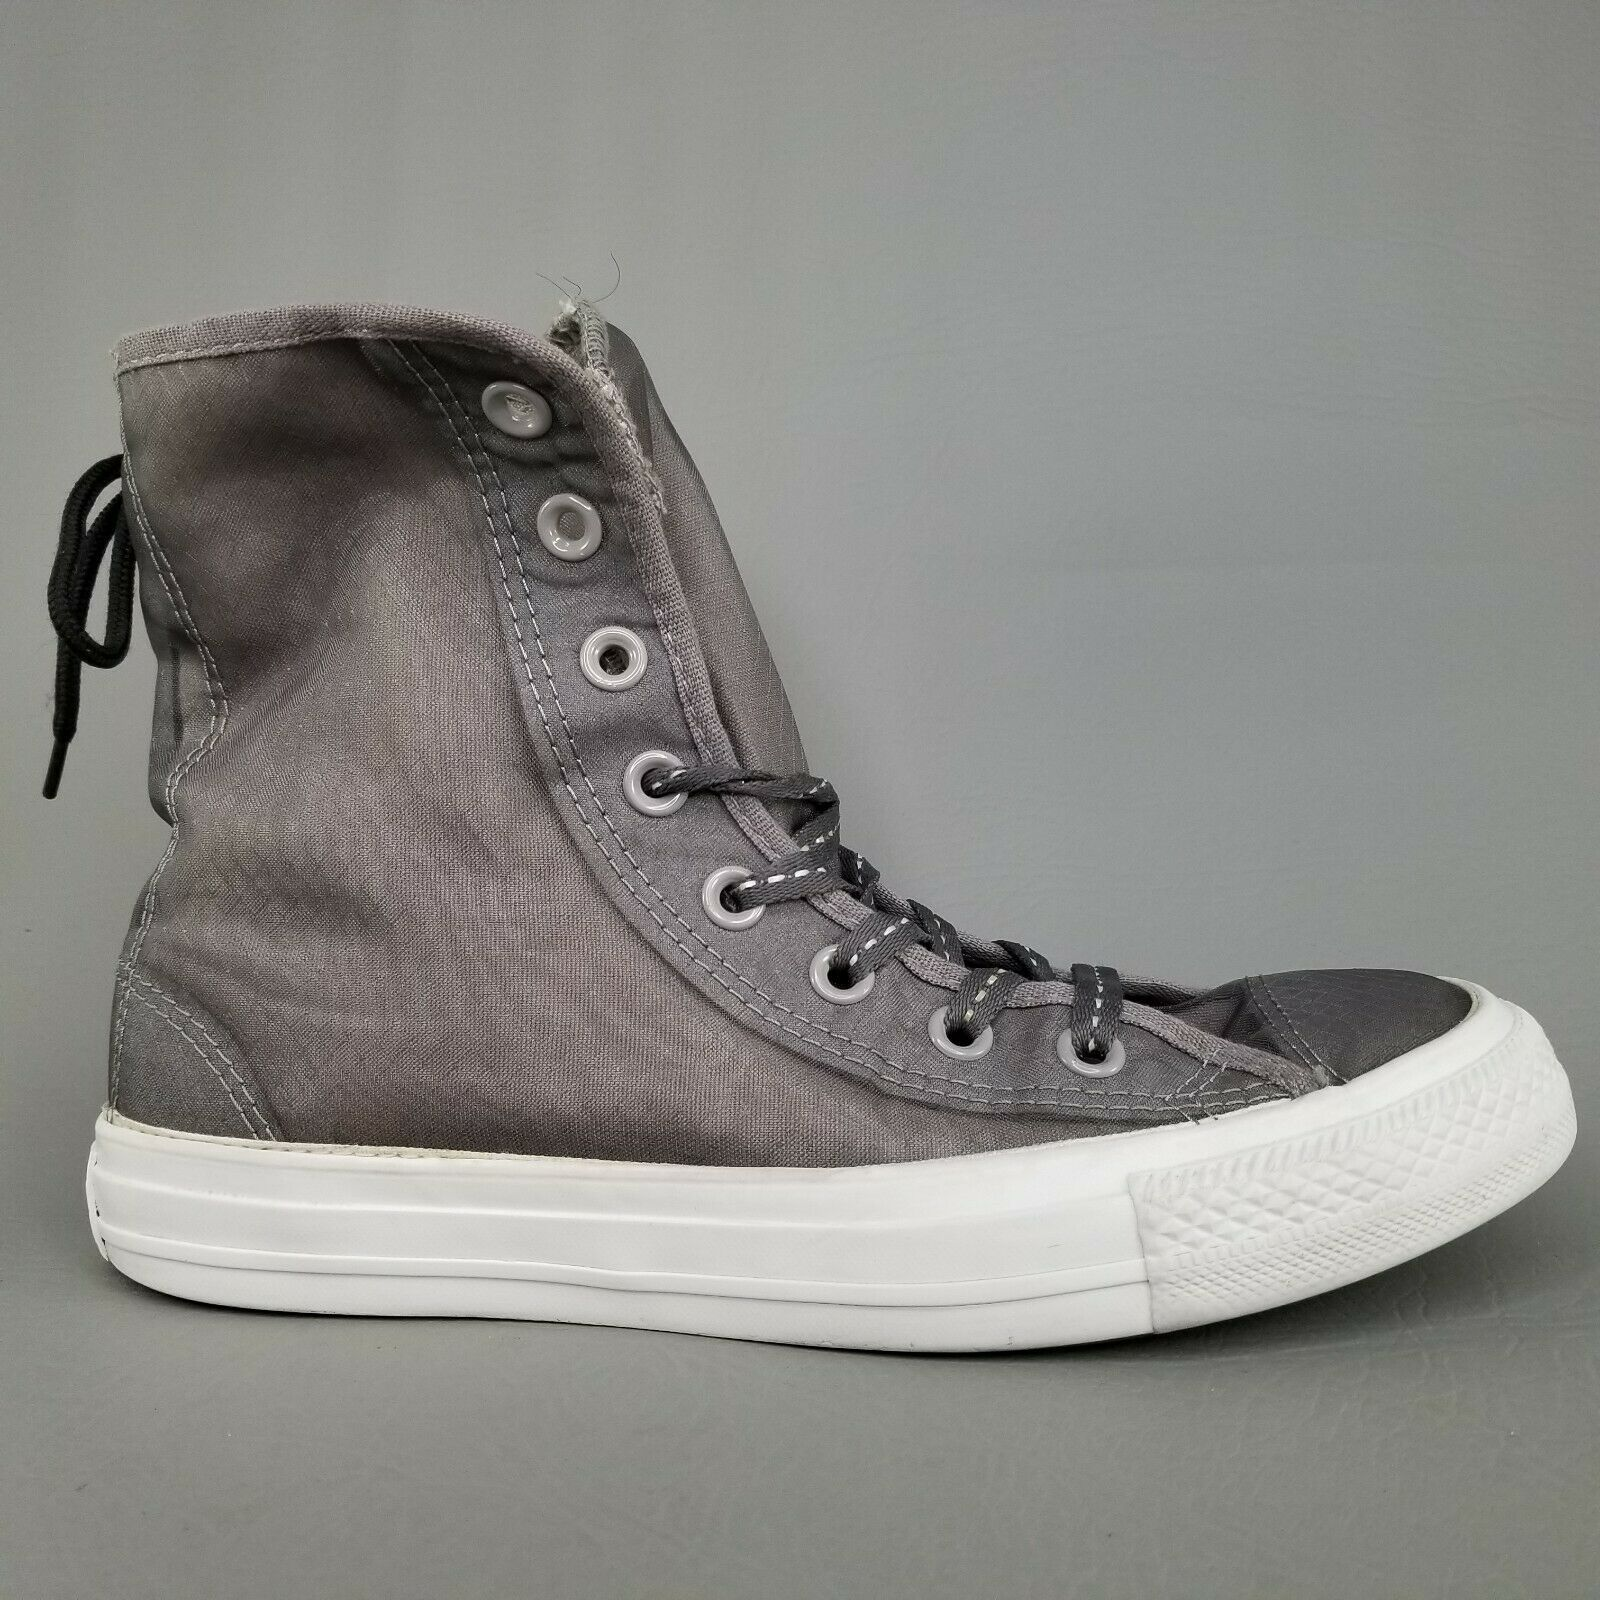 Converse CTAS Back Lace Hi Top Shoes Womens SZ 8 See Through Chucks Gray White image 3